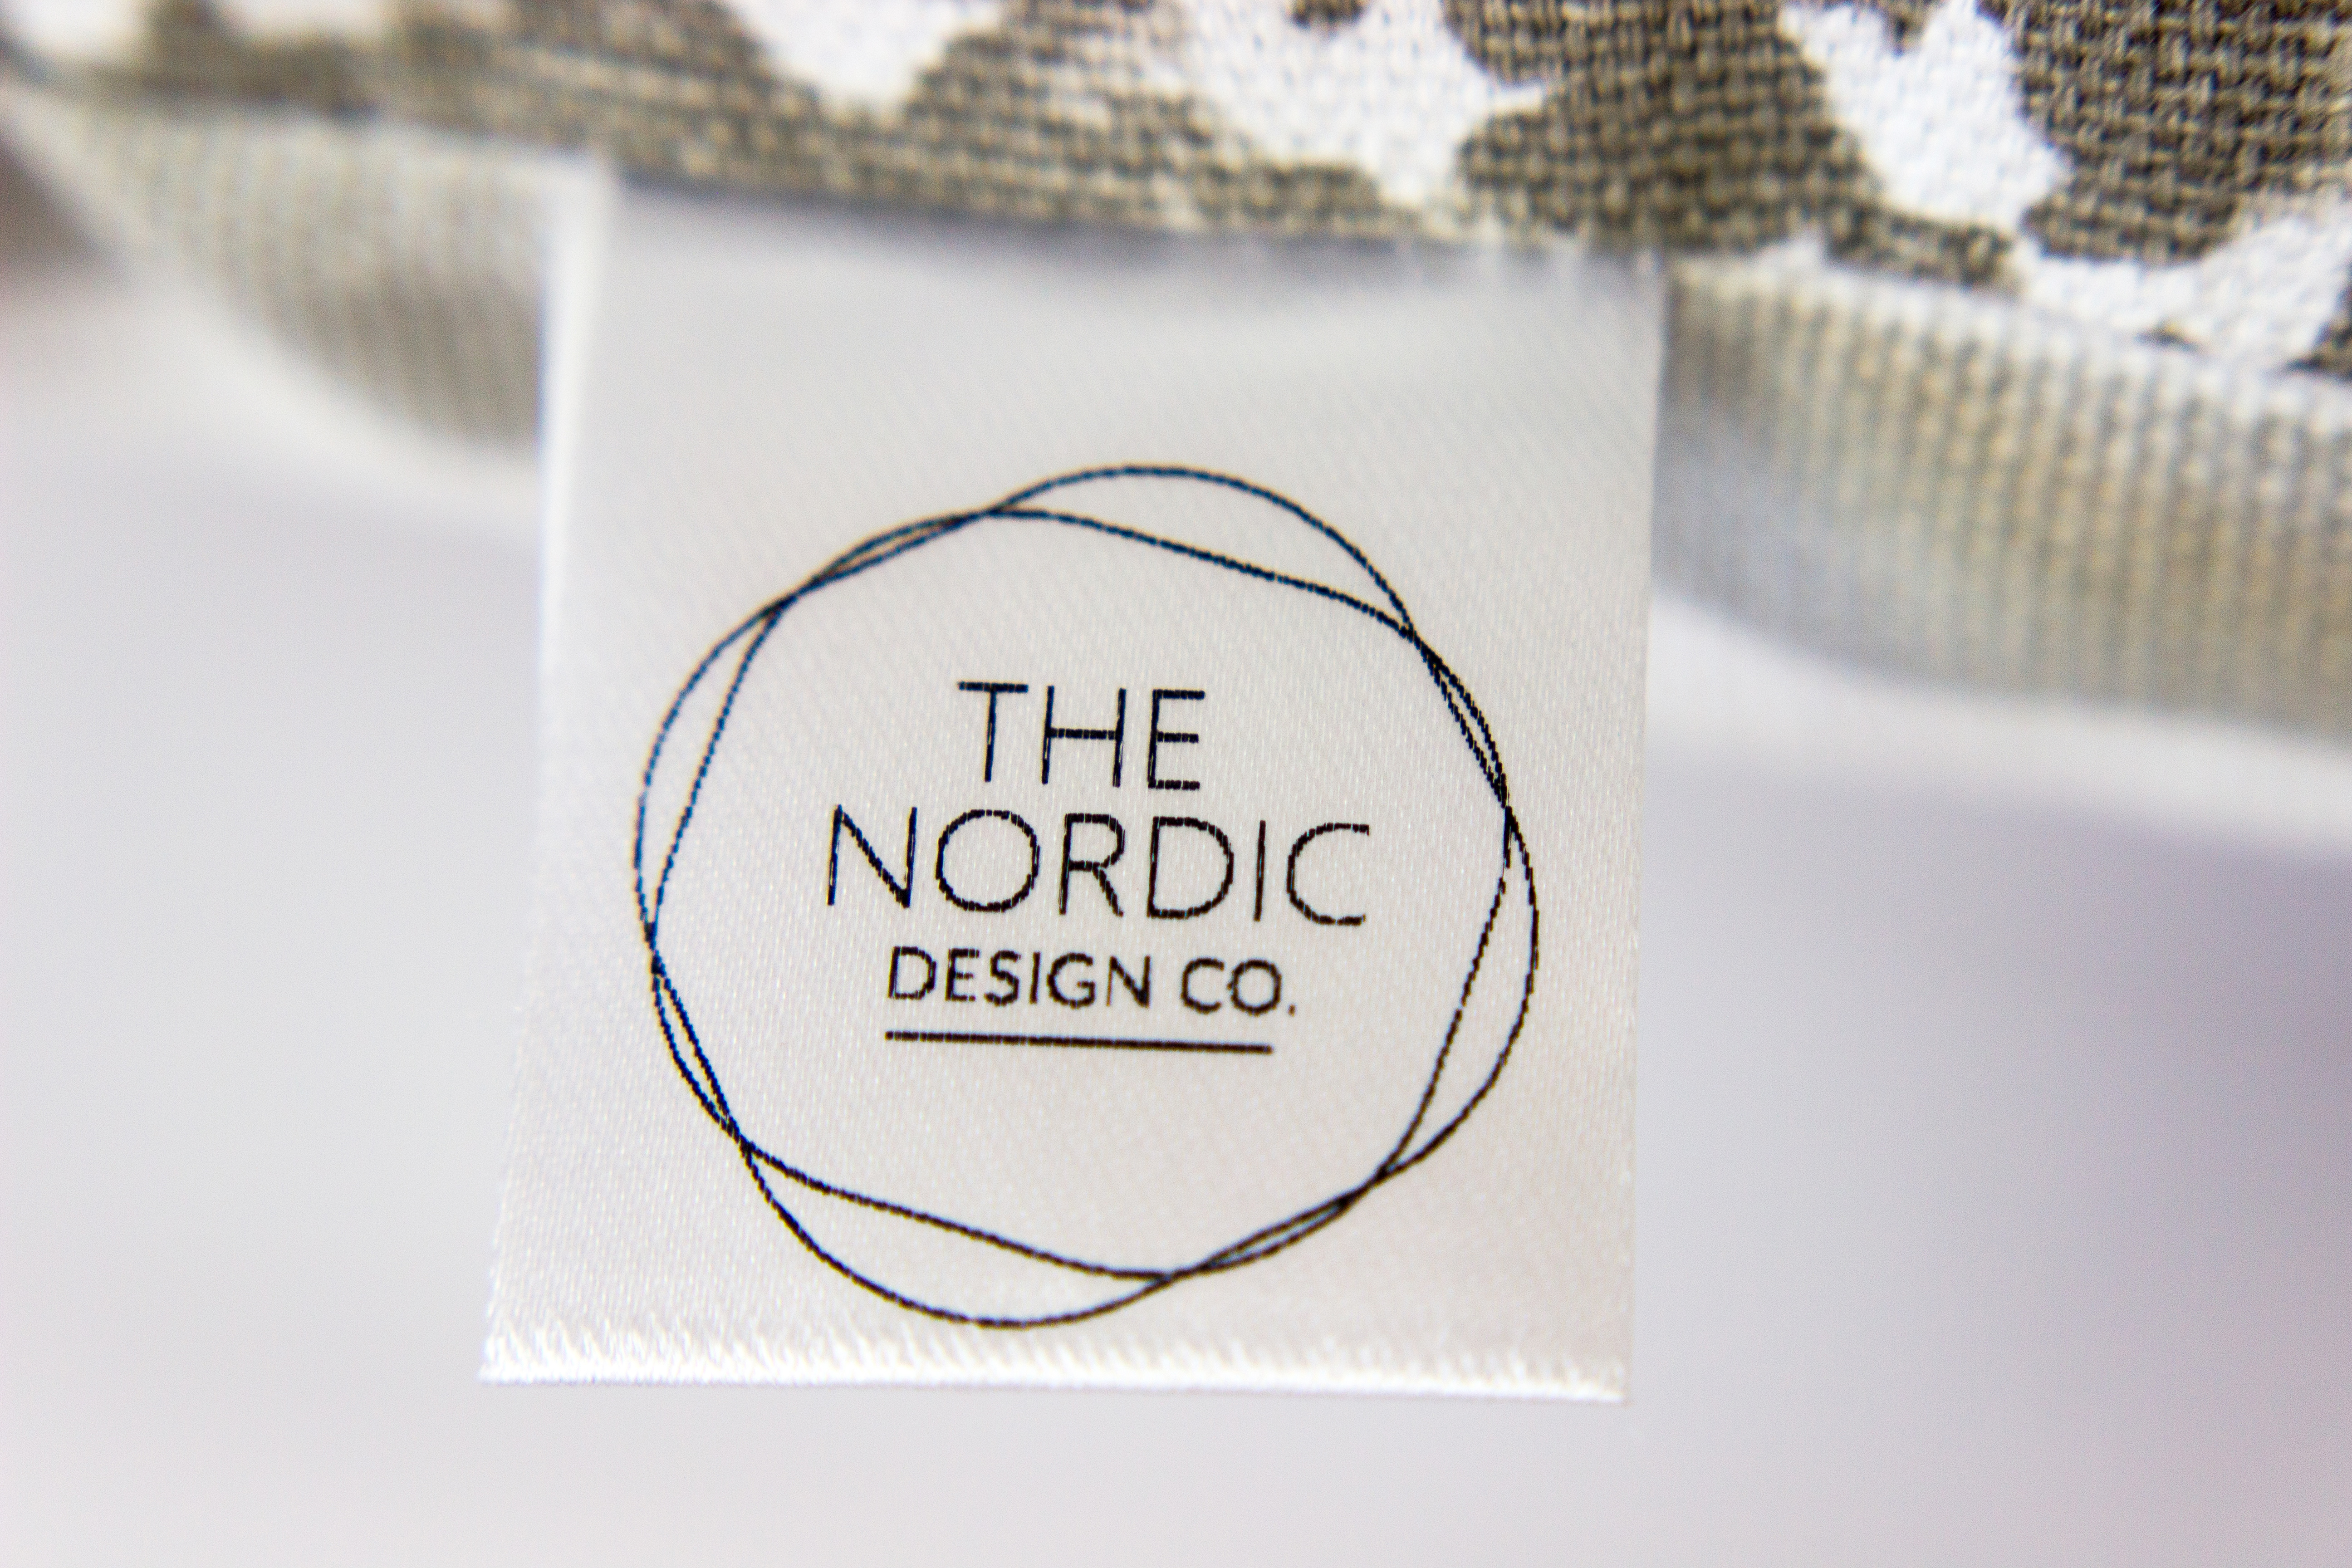 The Nordic Design Company